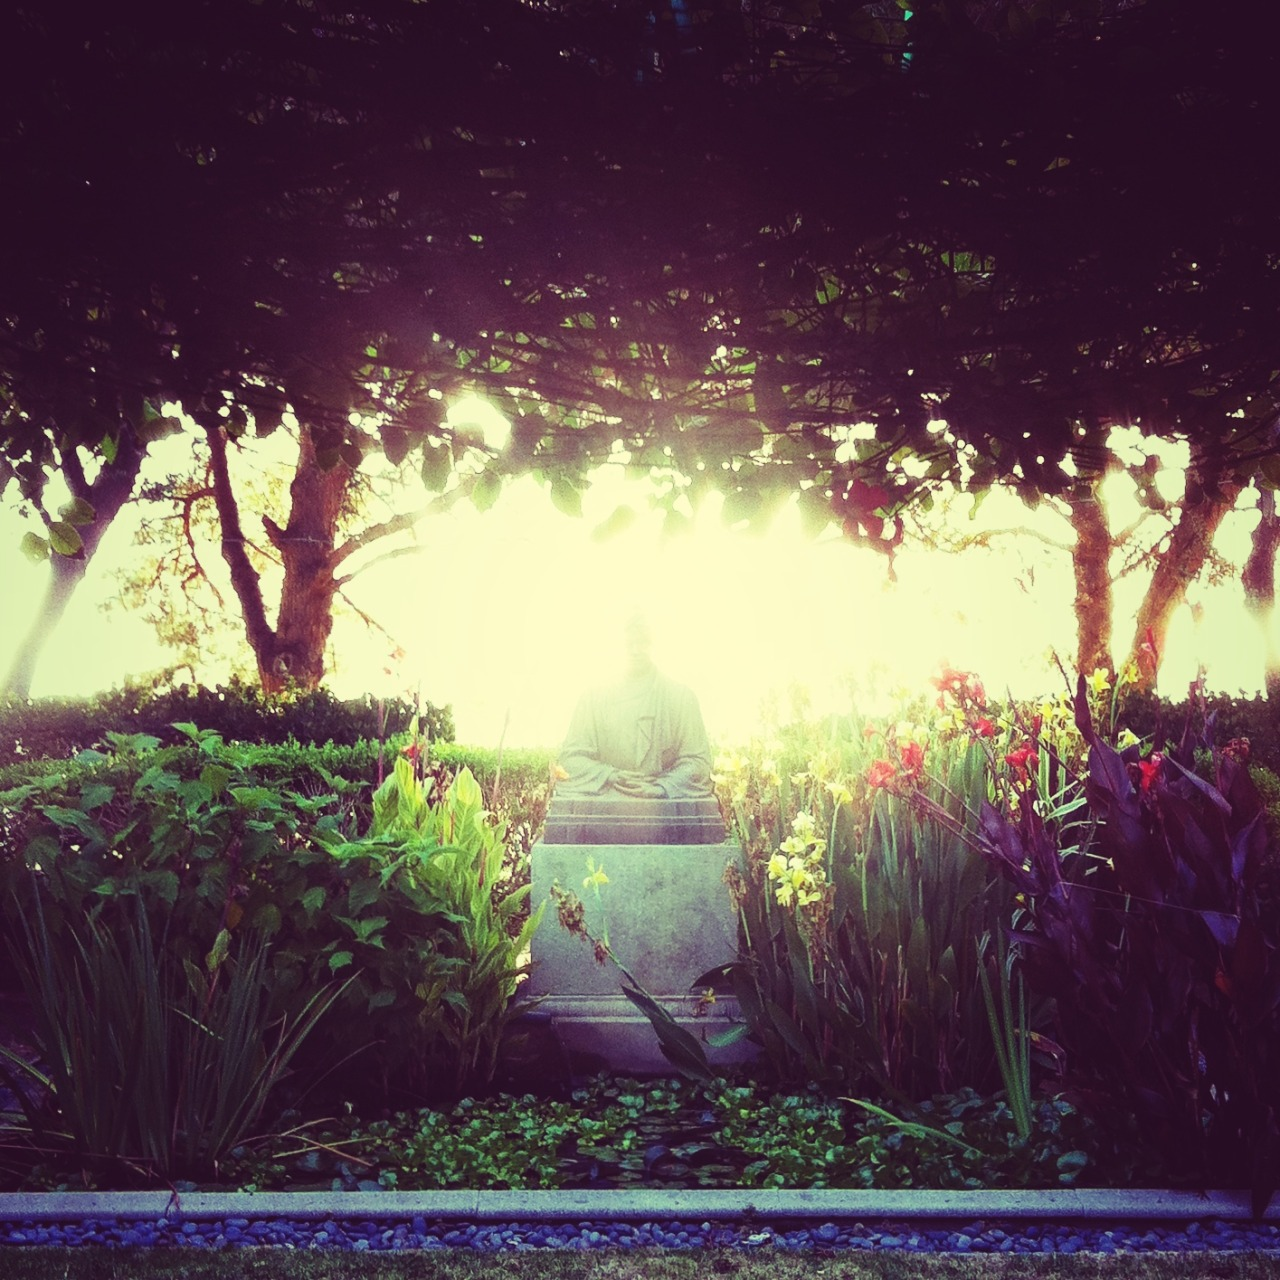 ap0t:  At the Ramakrishna monastery in Trabuco Canyon  *.*